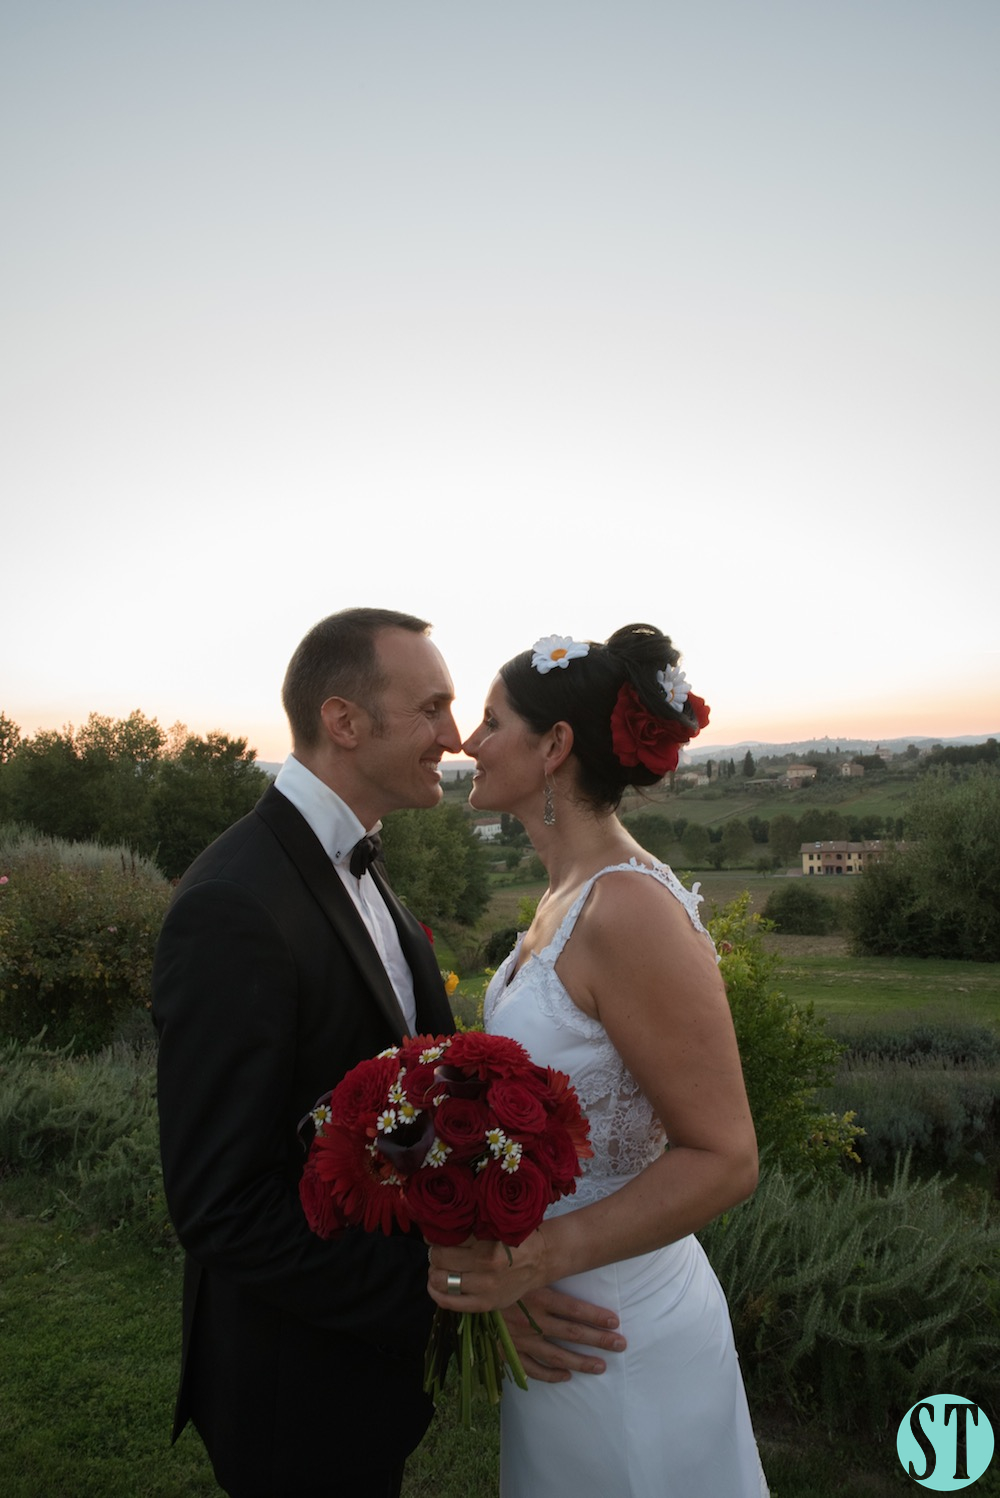 43Country wedding in tuscany - string lights